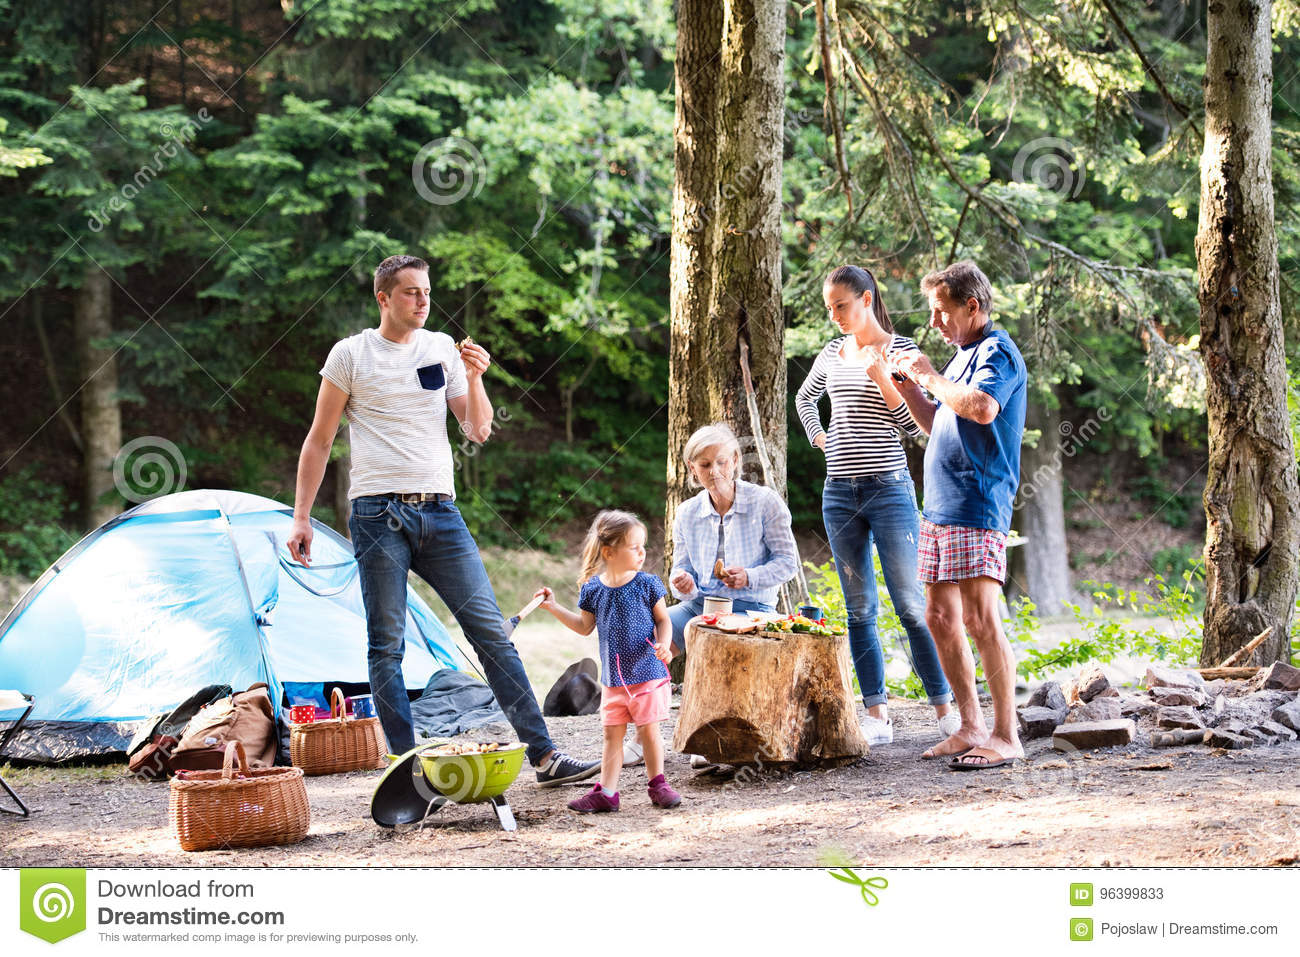 Beautiful family camping in forest eating together